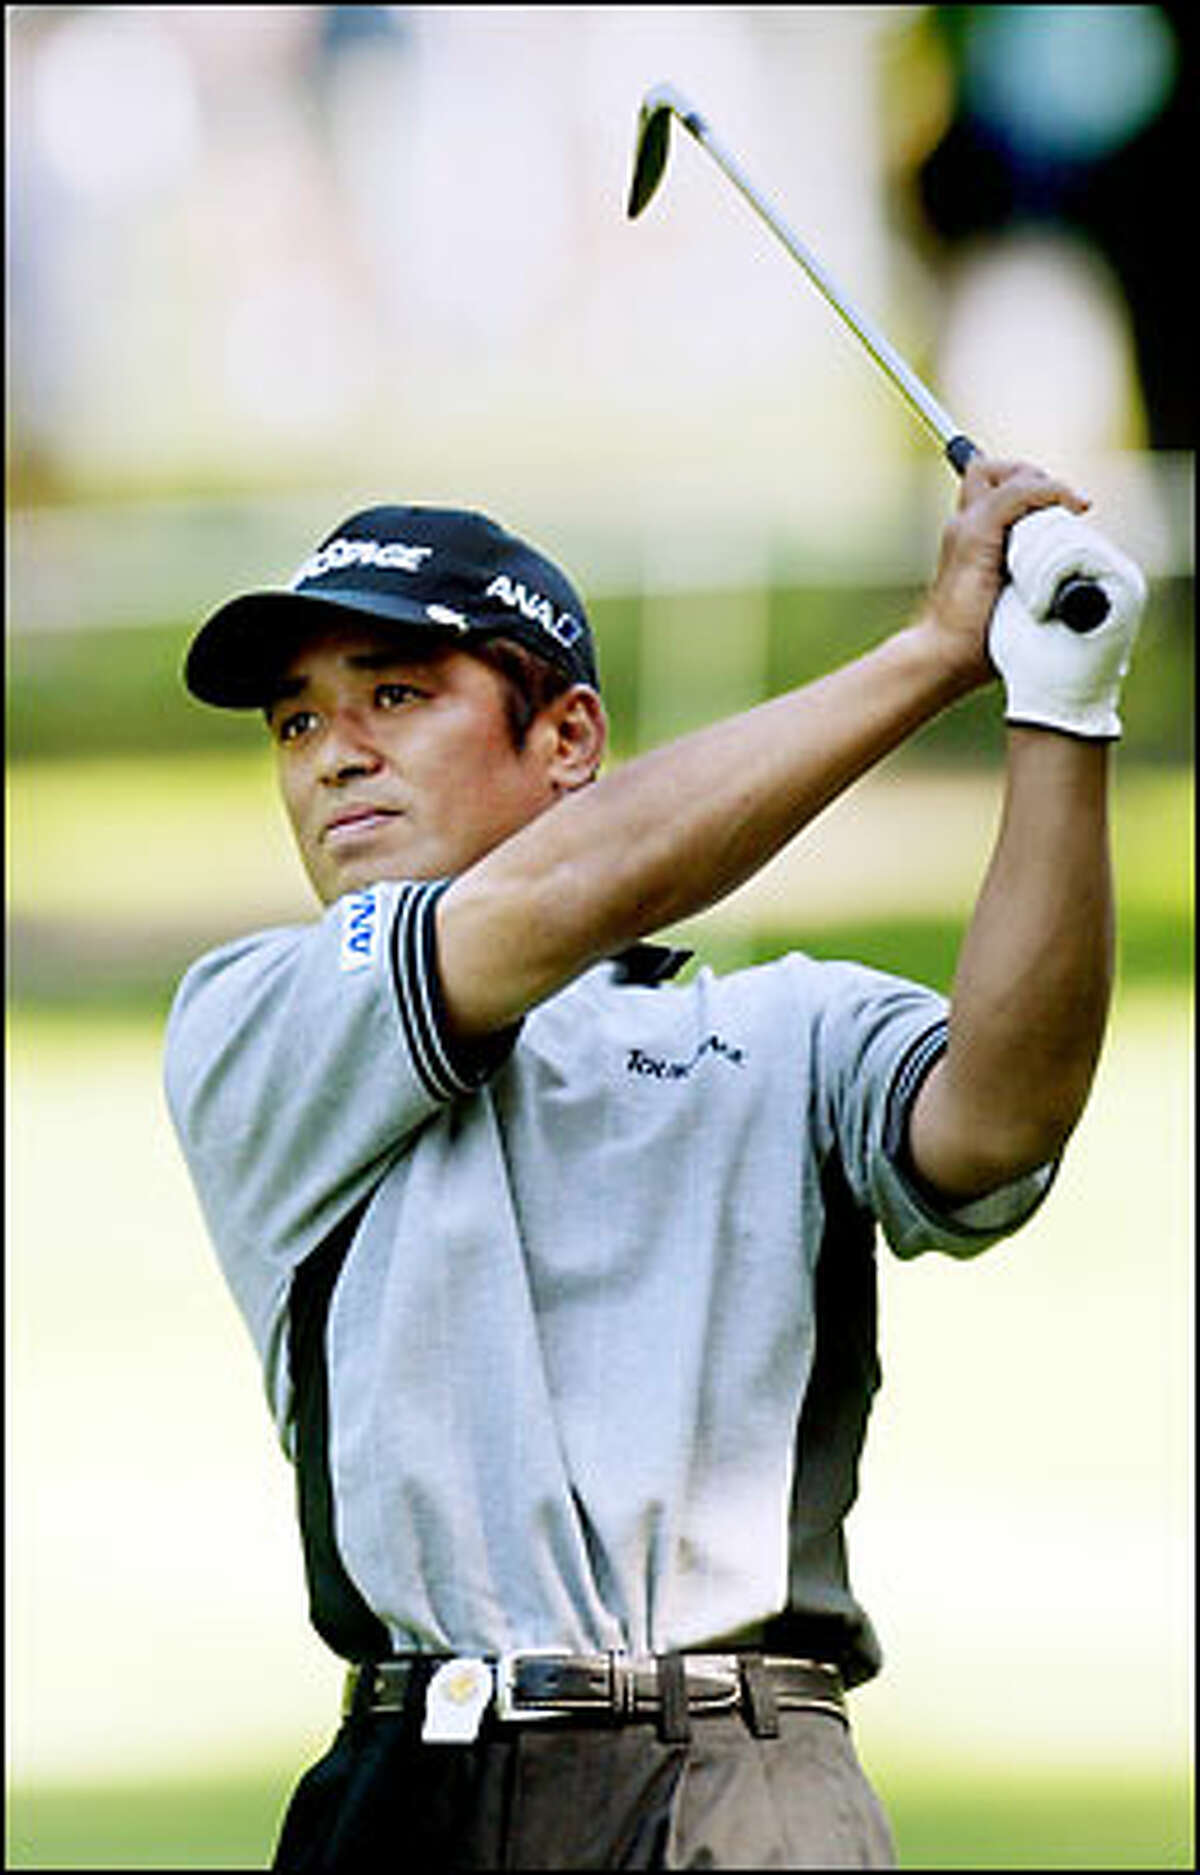 Toshi Izawa of Japan watches his fairway shot on the 4th hole at the 2002 NEC Invitational at Sahalee Country Club in Sammamish. Izawa finished tied for first at 6 under par.